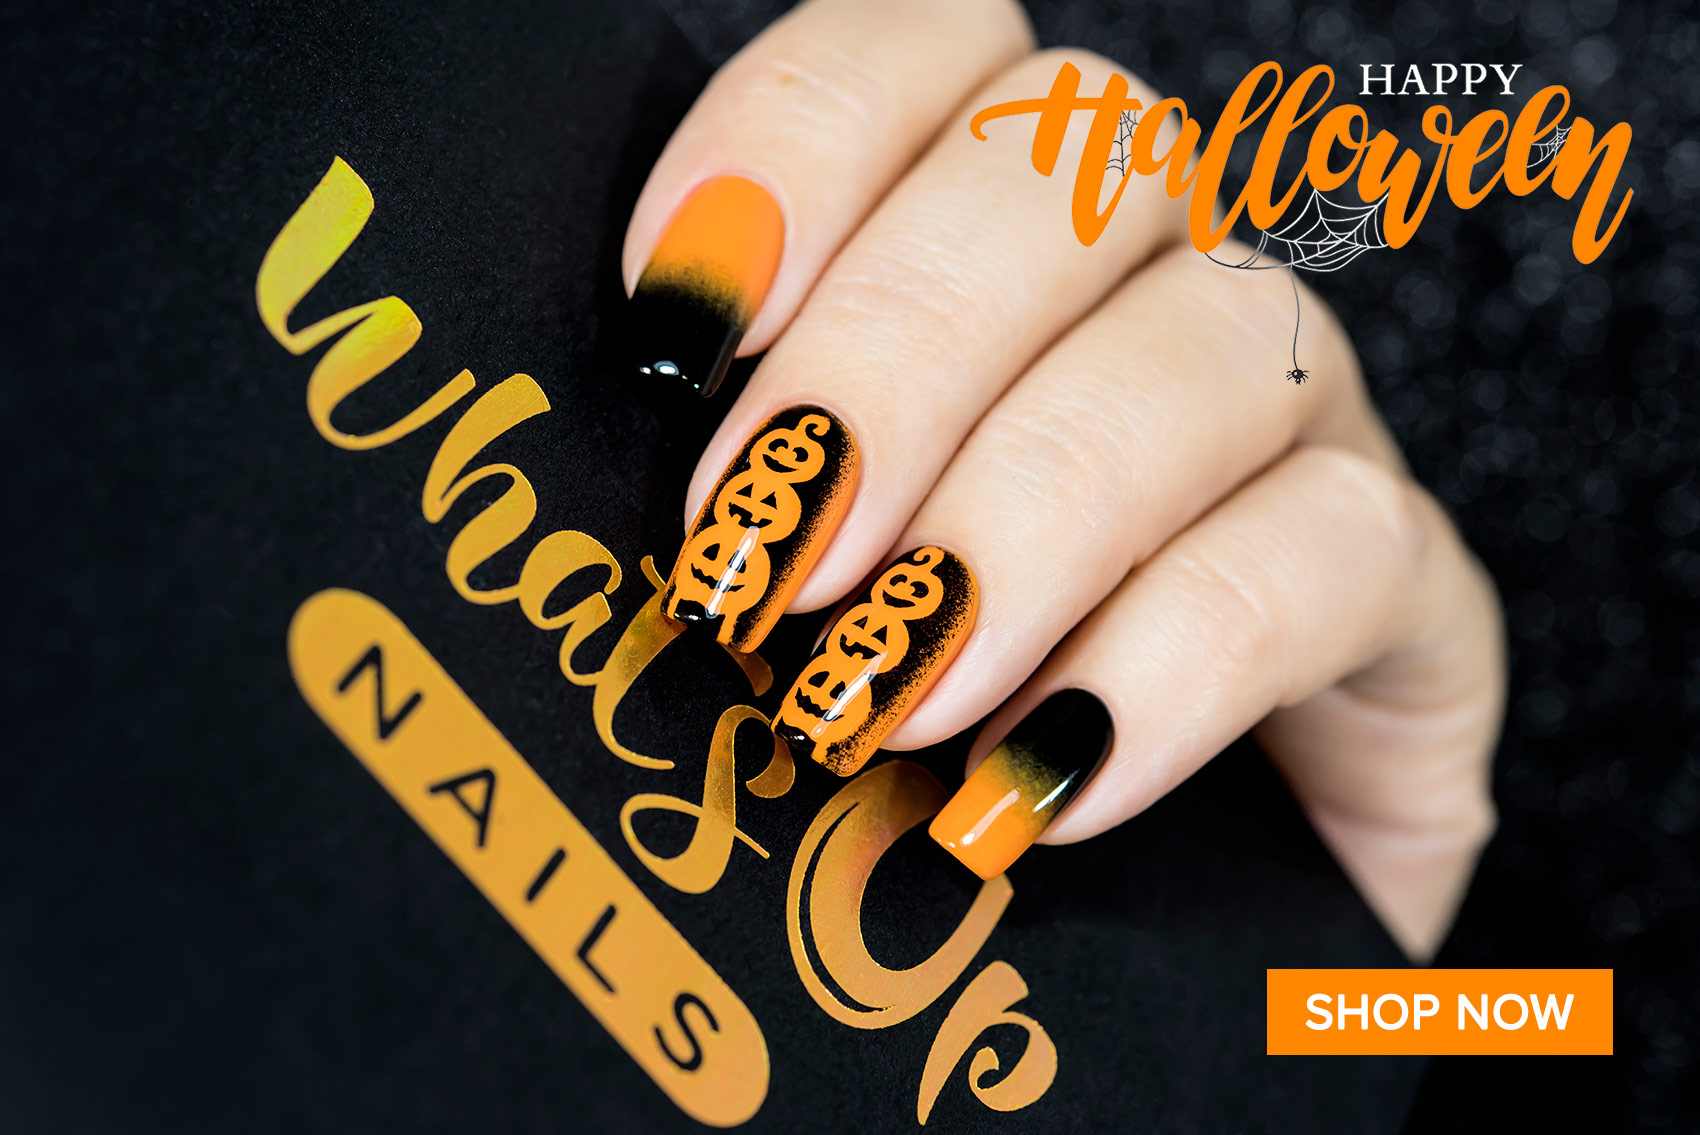 Best Selection of Halloween Nail Products